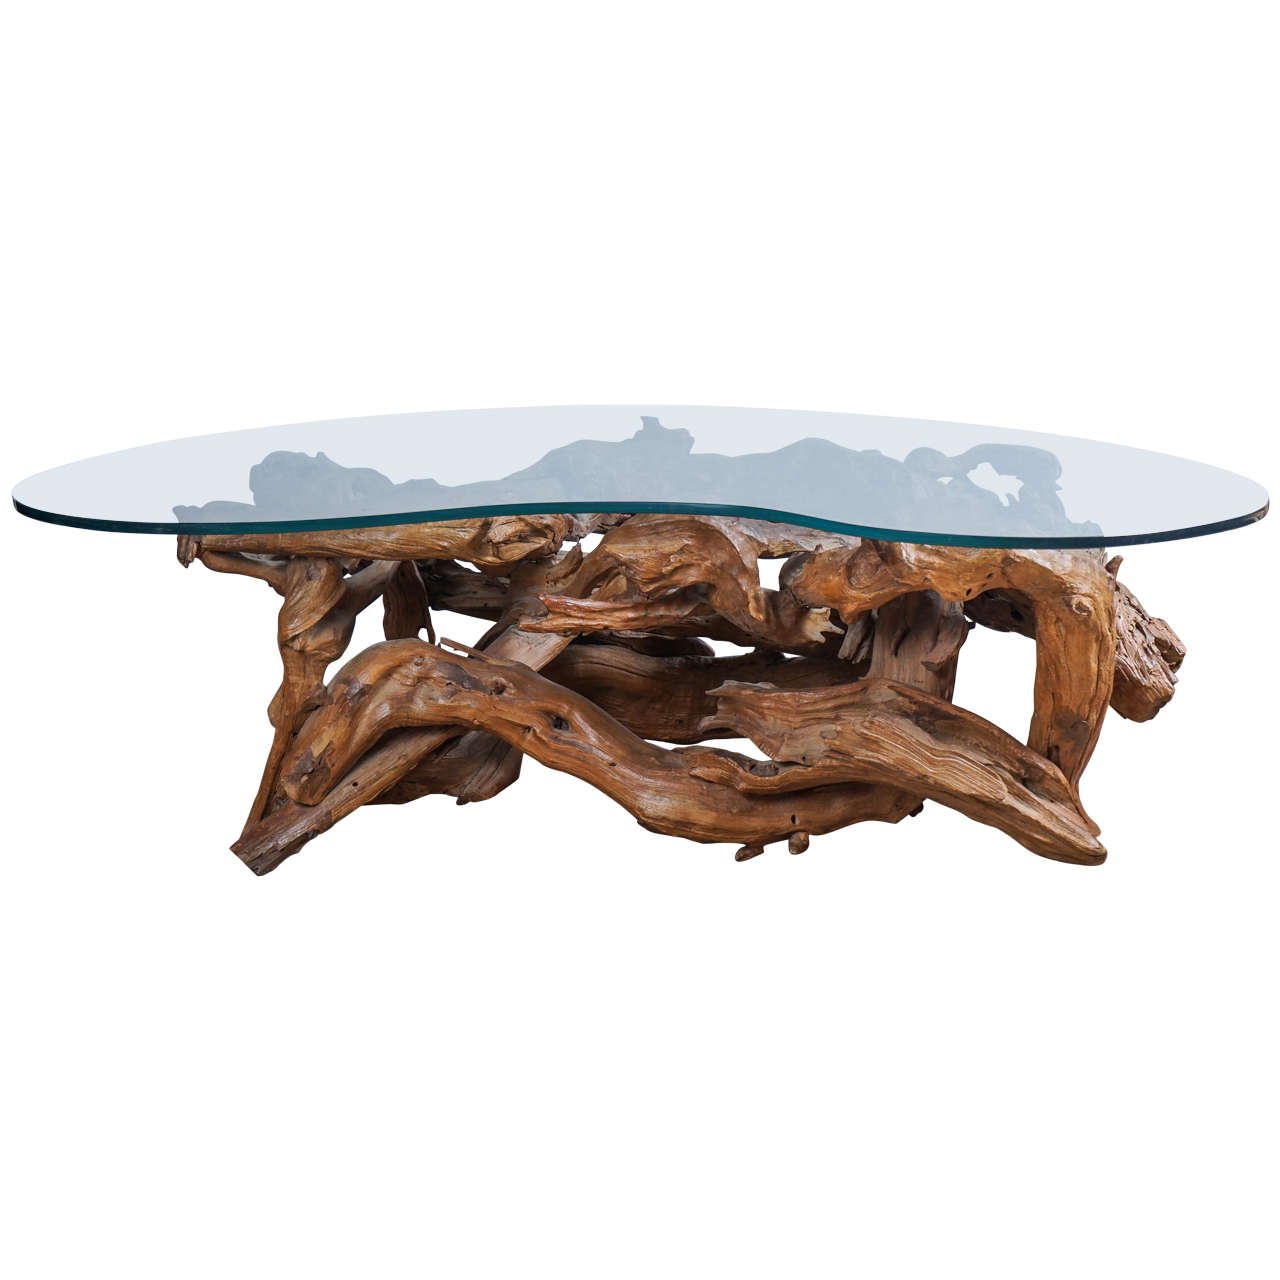 Greatest Root Table with Glass Top For Sale at 1stdibs WP18